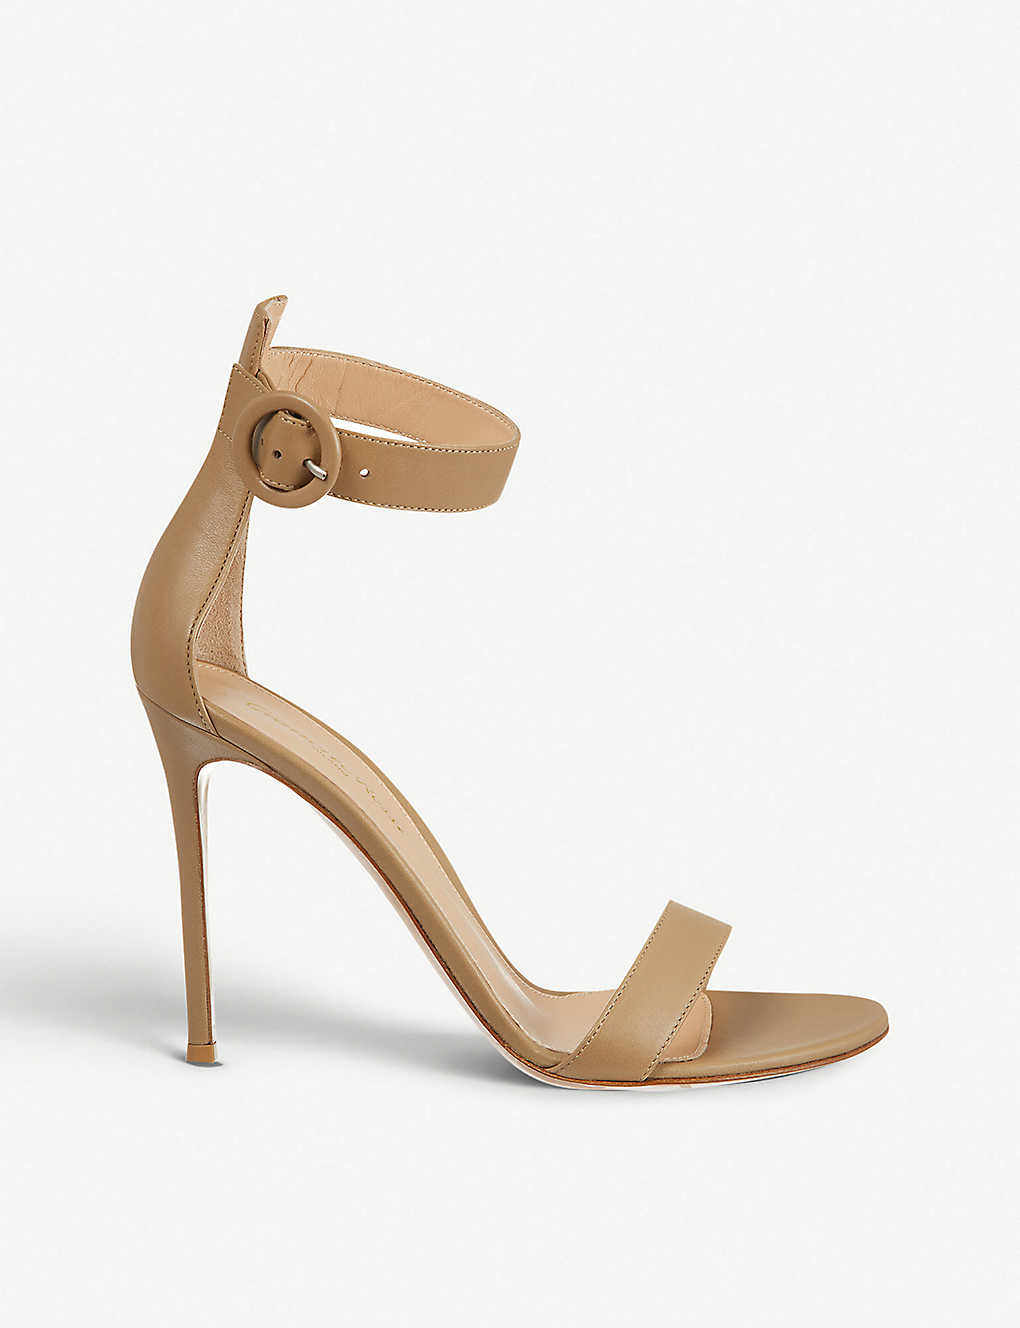 06ae24d84 Buy Women's Gianvito Rossi for the best price - STYLA.LY